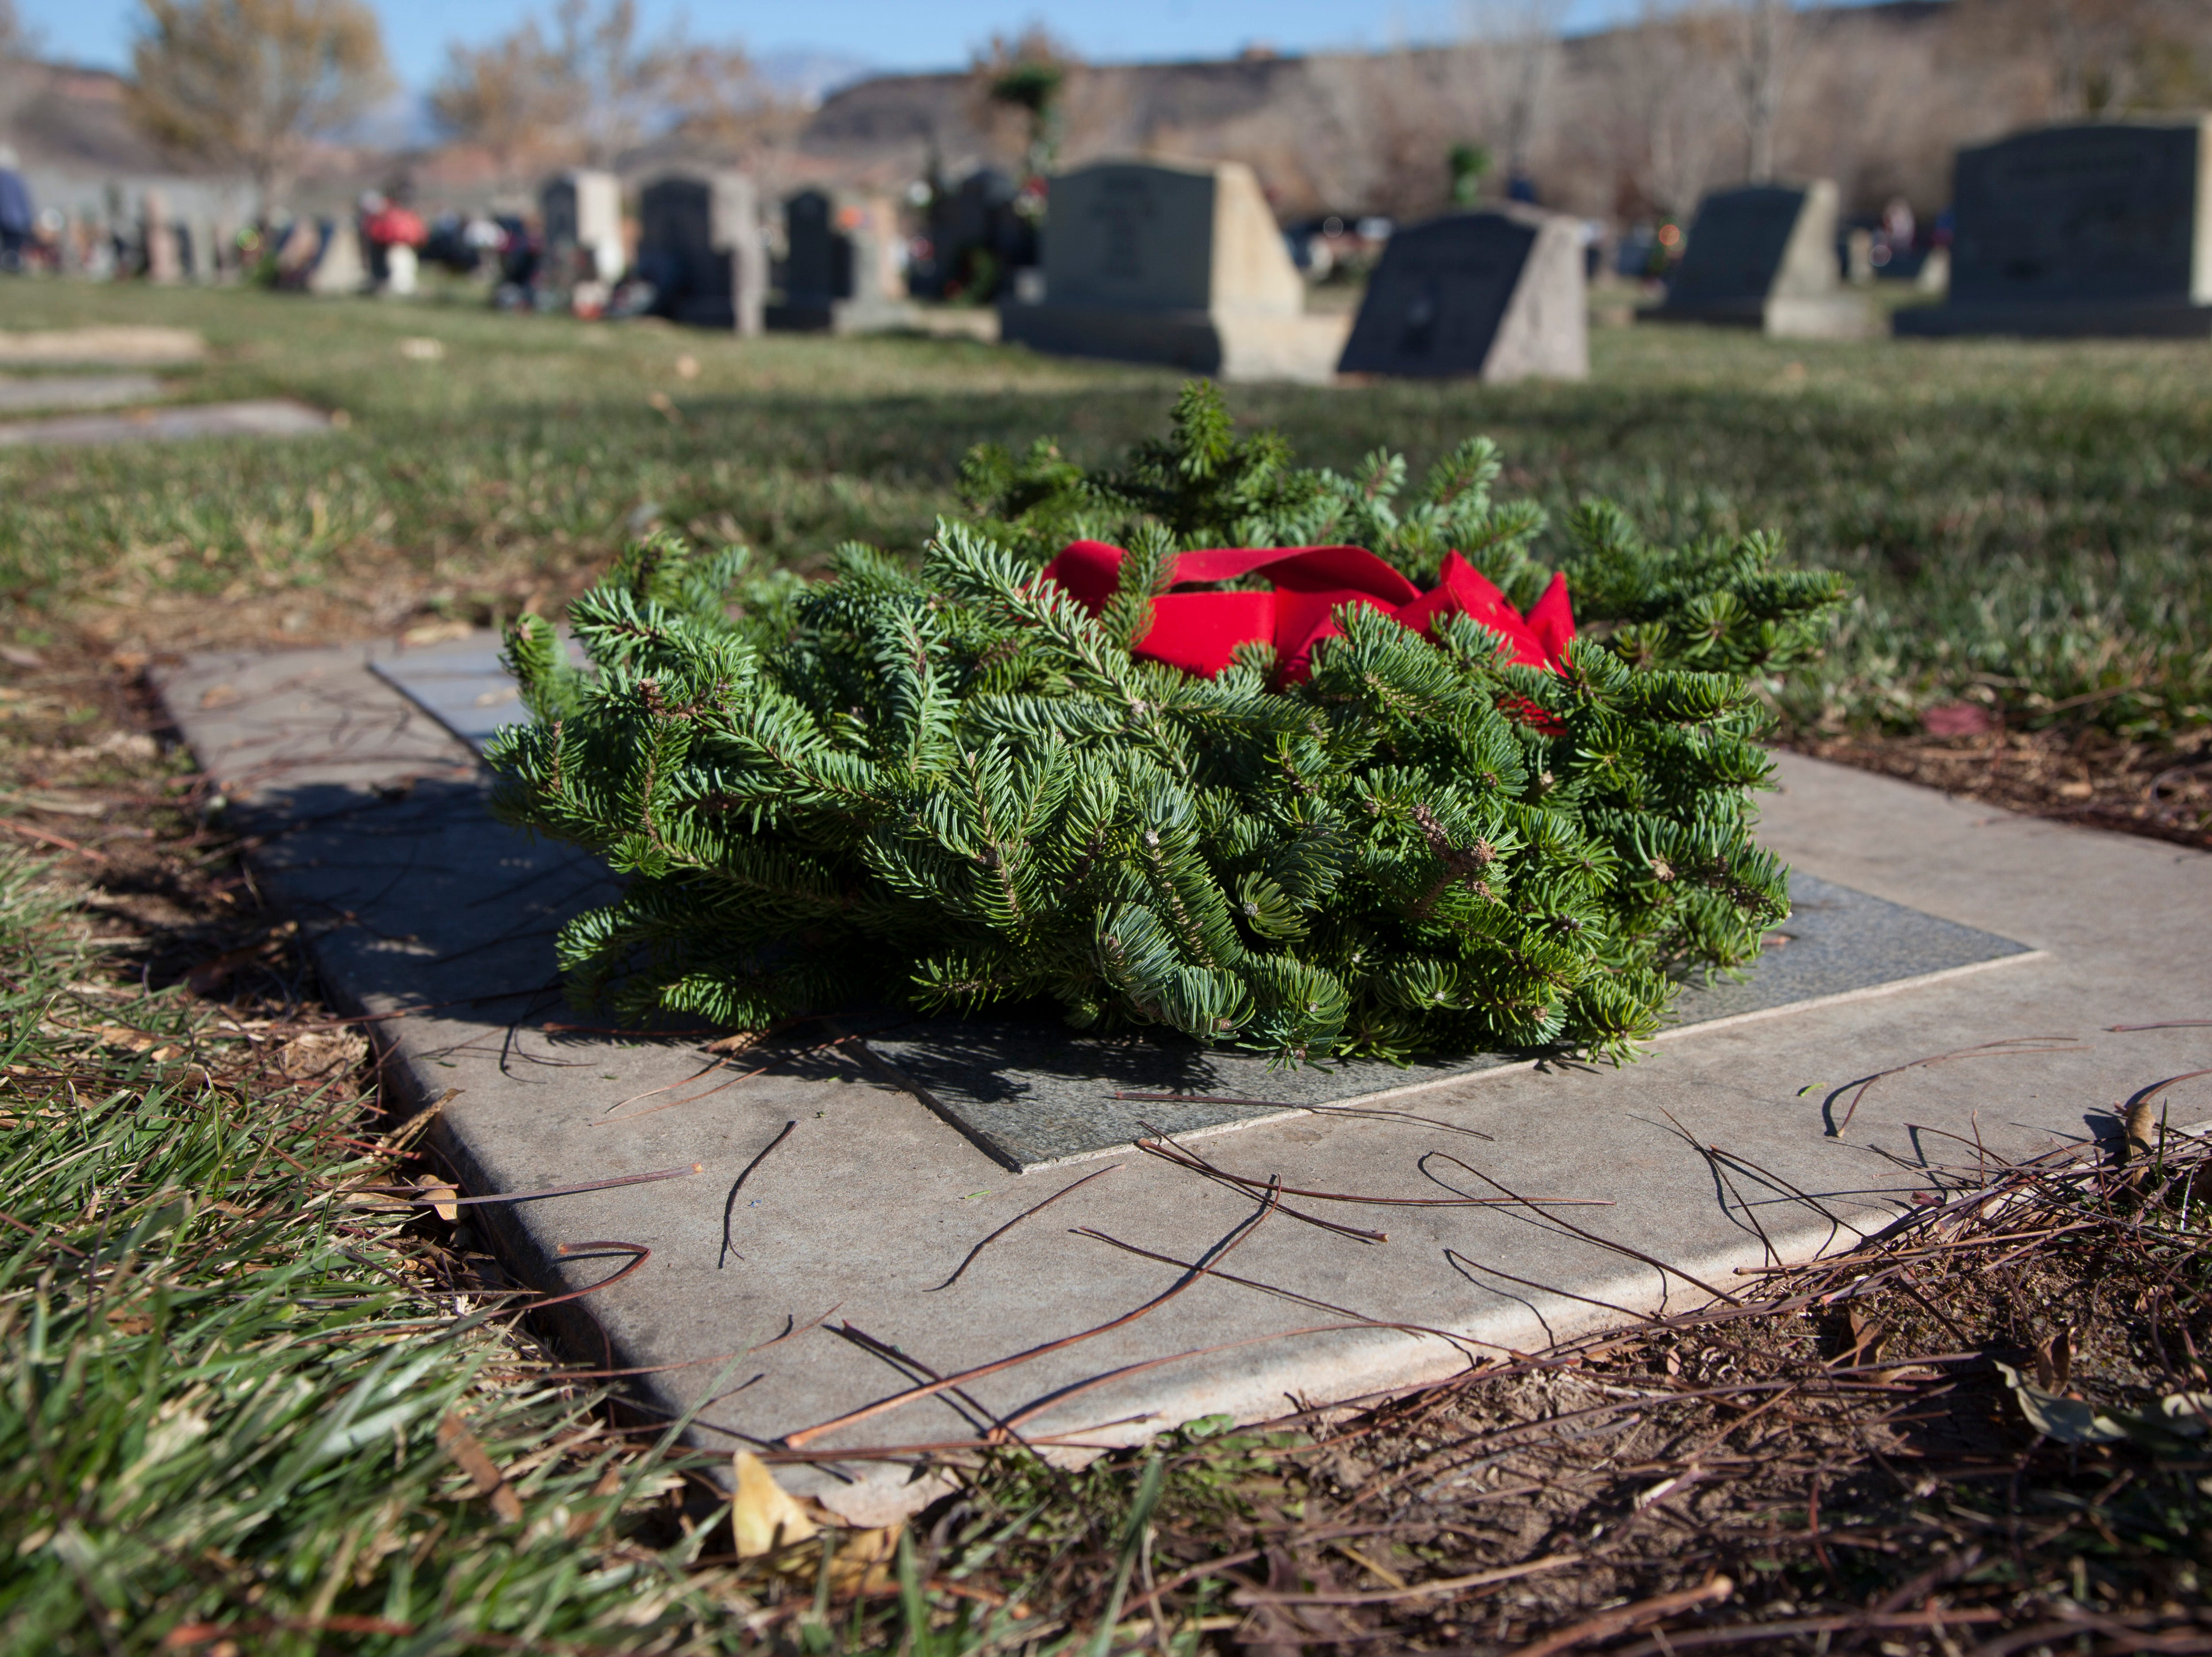 Community members place wreaths on the headstones of veterans at the Tonaquint Cemetery as part of the Wreaths Across America Saturday, Dec. 15, 2018.